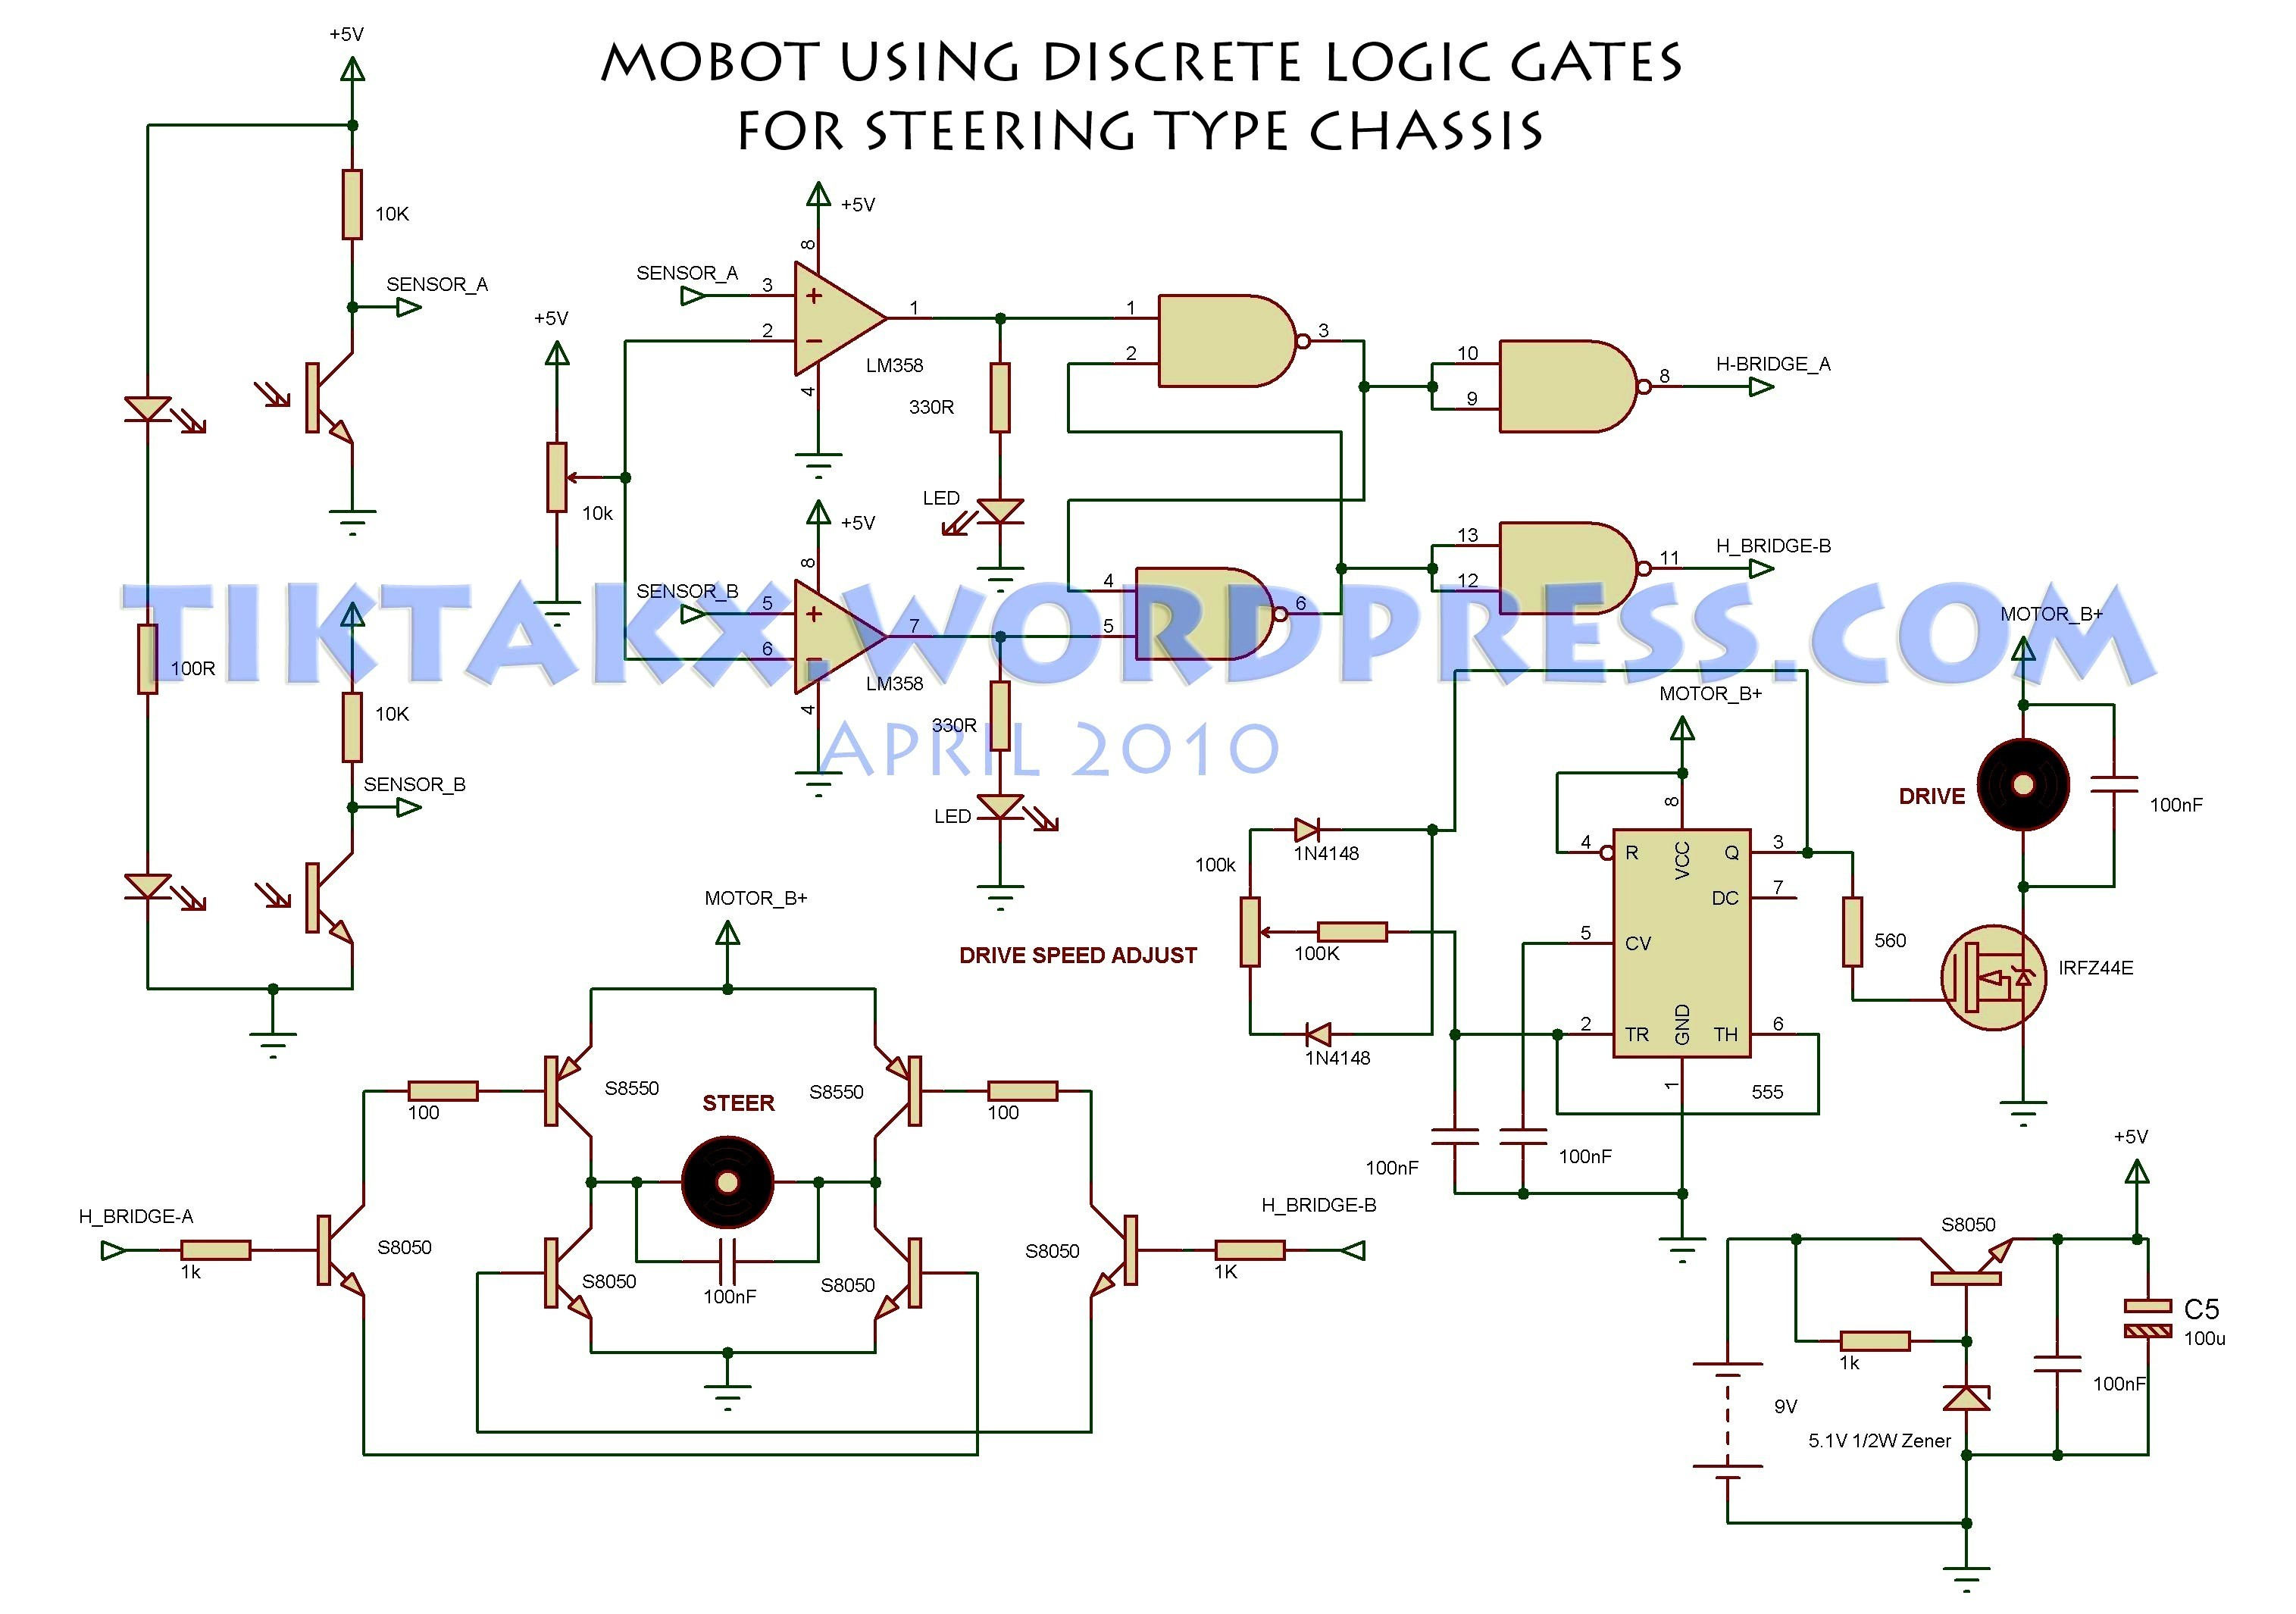 Toy Car Circuit Diagram Electric toy Car Wiring Diagram Of Toy Car Circuit Diagram Circuit Diagram Remote Control Car